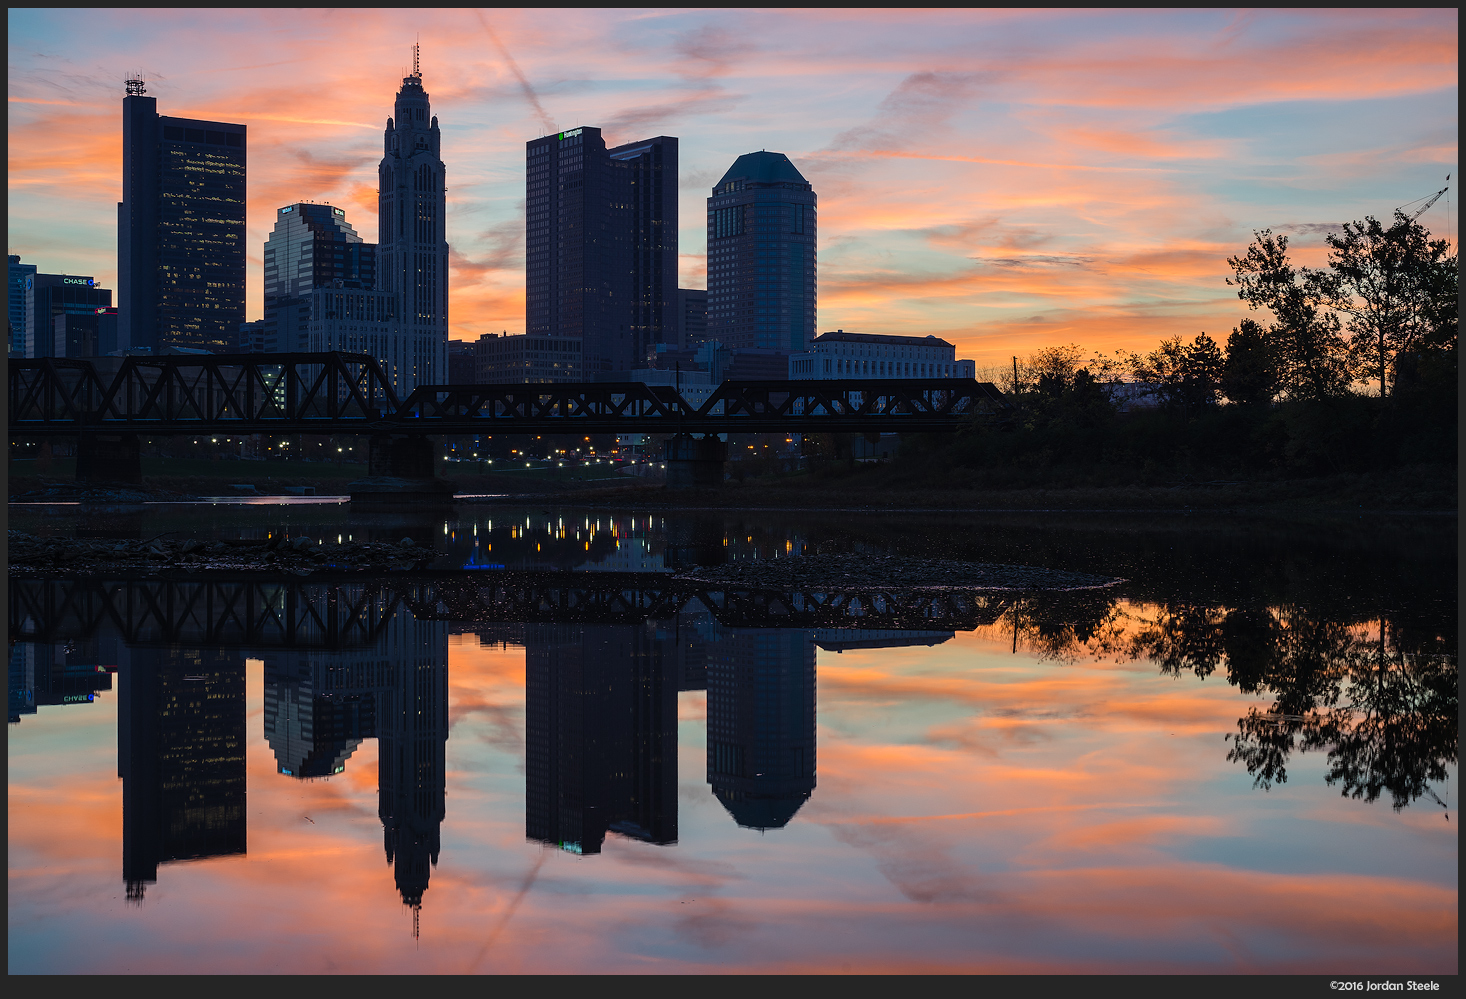 Sunrise on the Scioto - Sony A7 II with Zeiss FE 50mm f/1.4 @ f/11